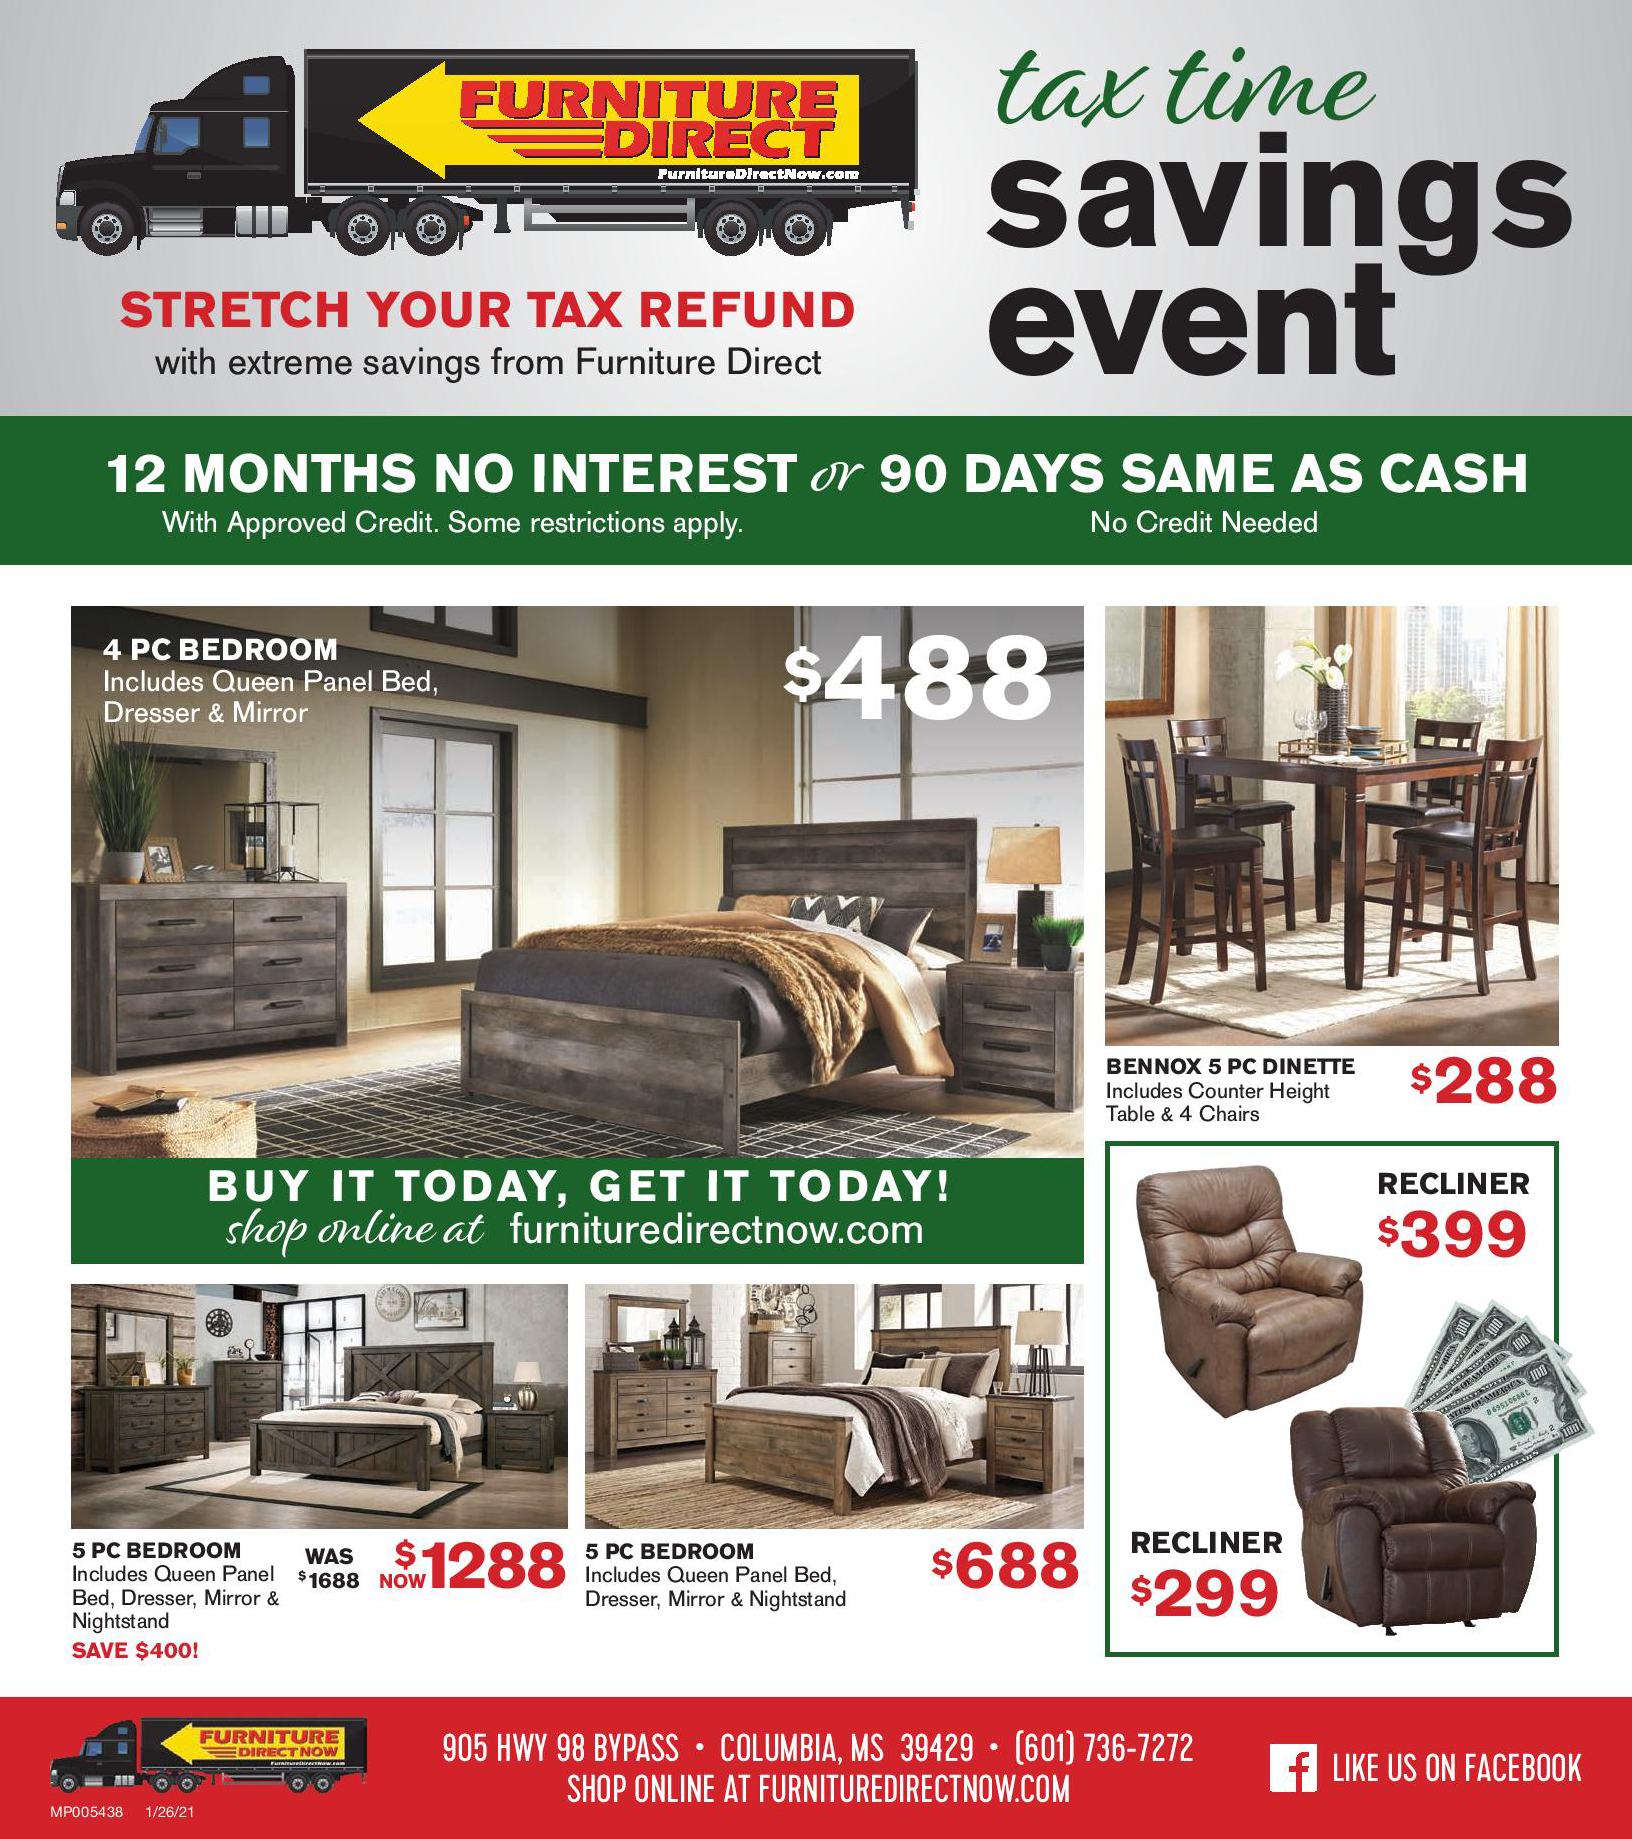 Furniture Direct Outlet Store Specials